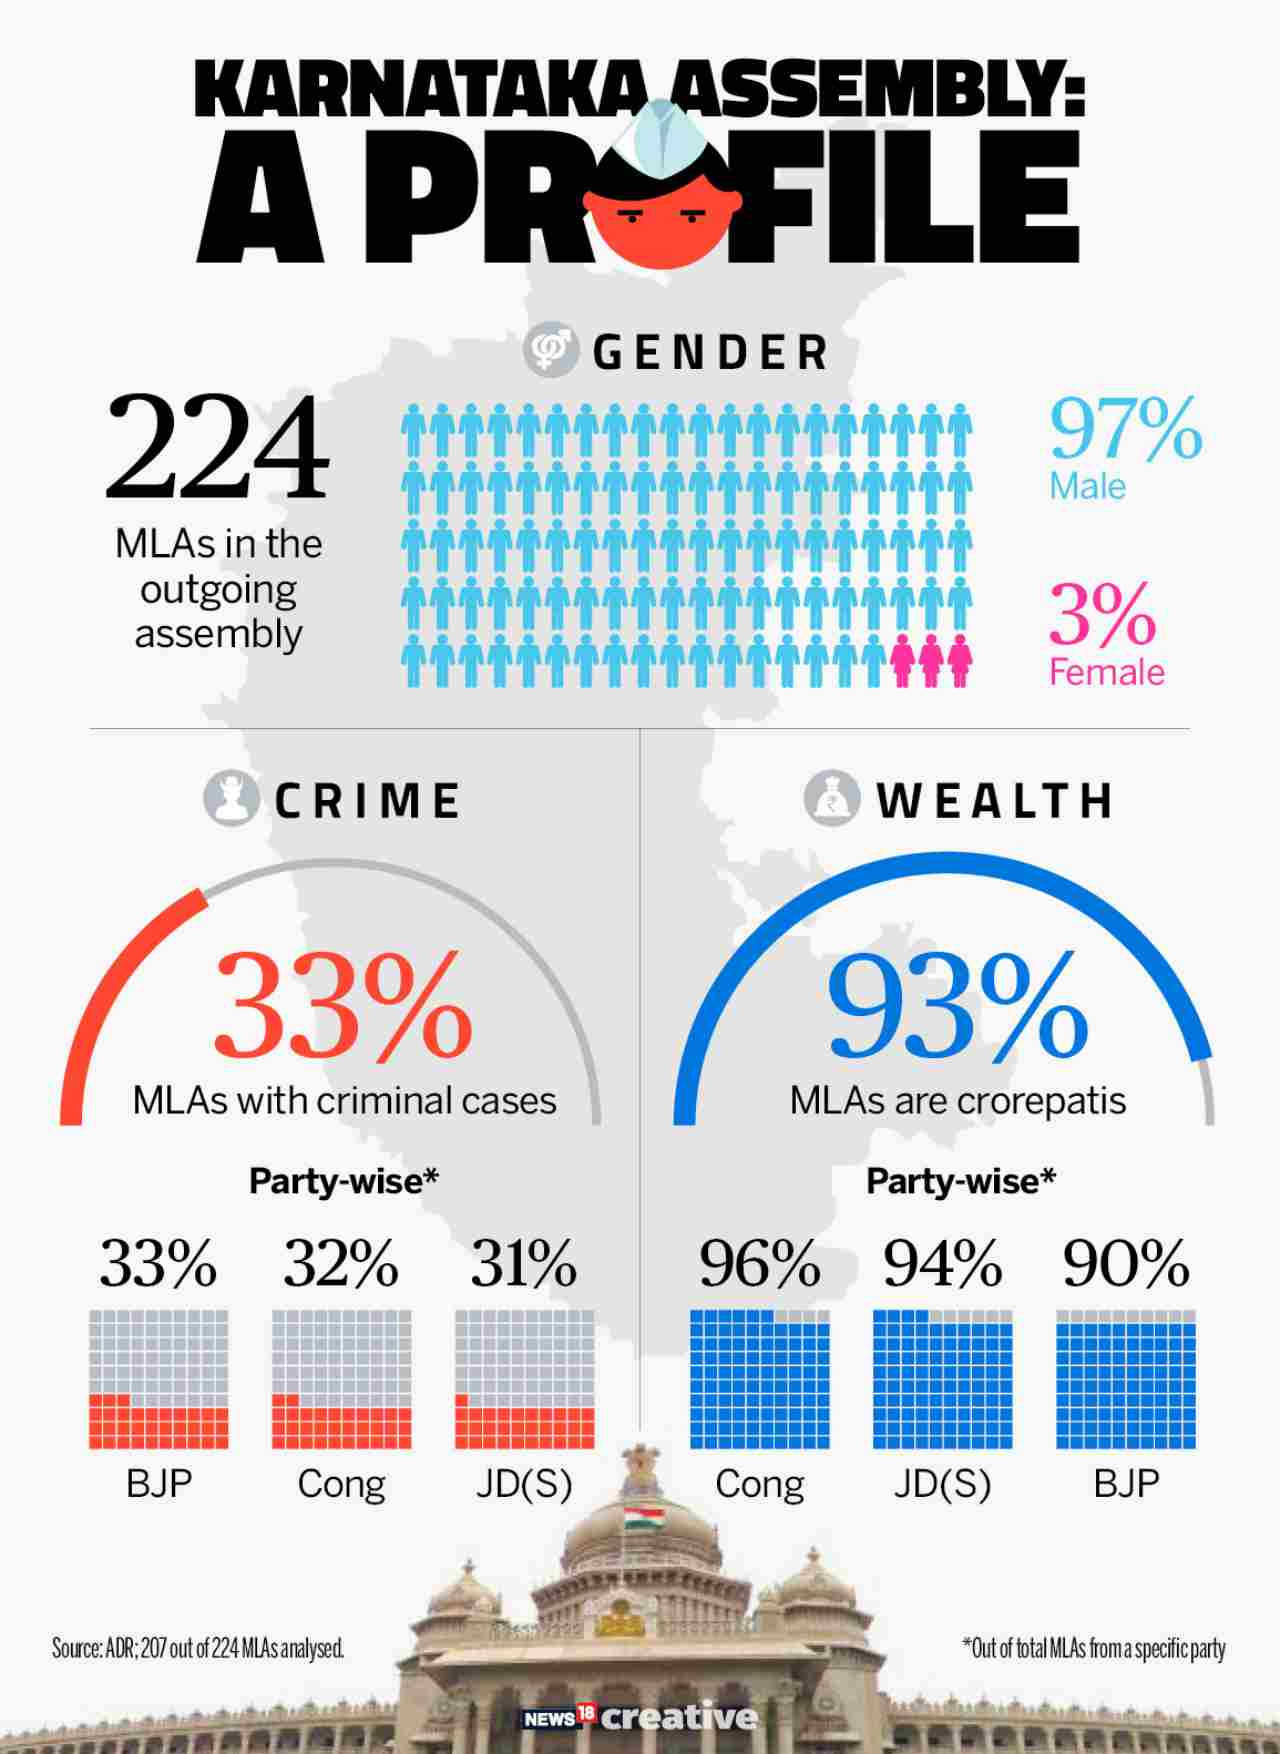 Criminals & Crorepatis | The outgoing assembly is predominantly male. One-third of the legislators have criminal cases against them and an overwhelming 93% have amassed over Rs 1 crore. All three major parties are neck-and-neck in being represented by alleged criminals and crorepatis.